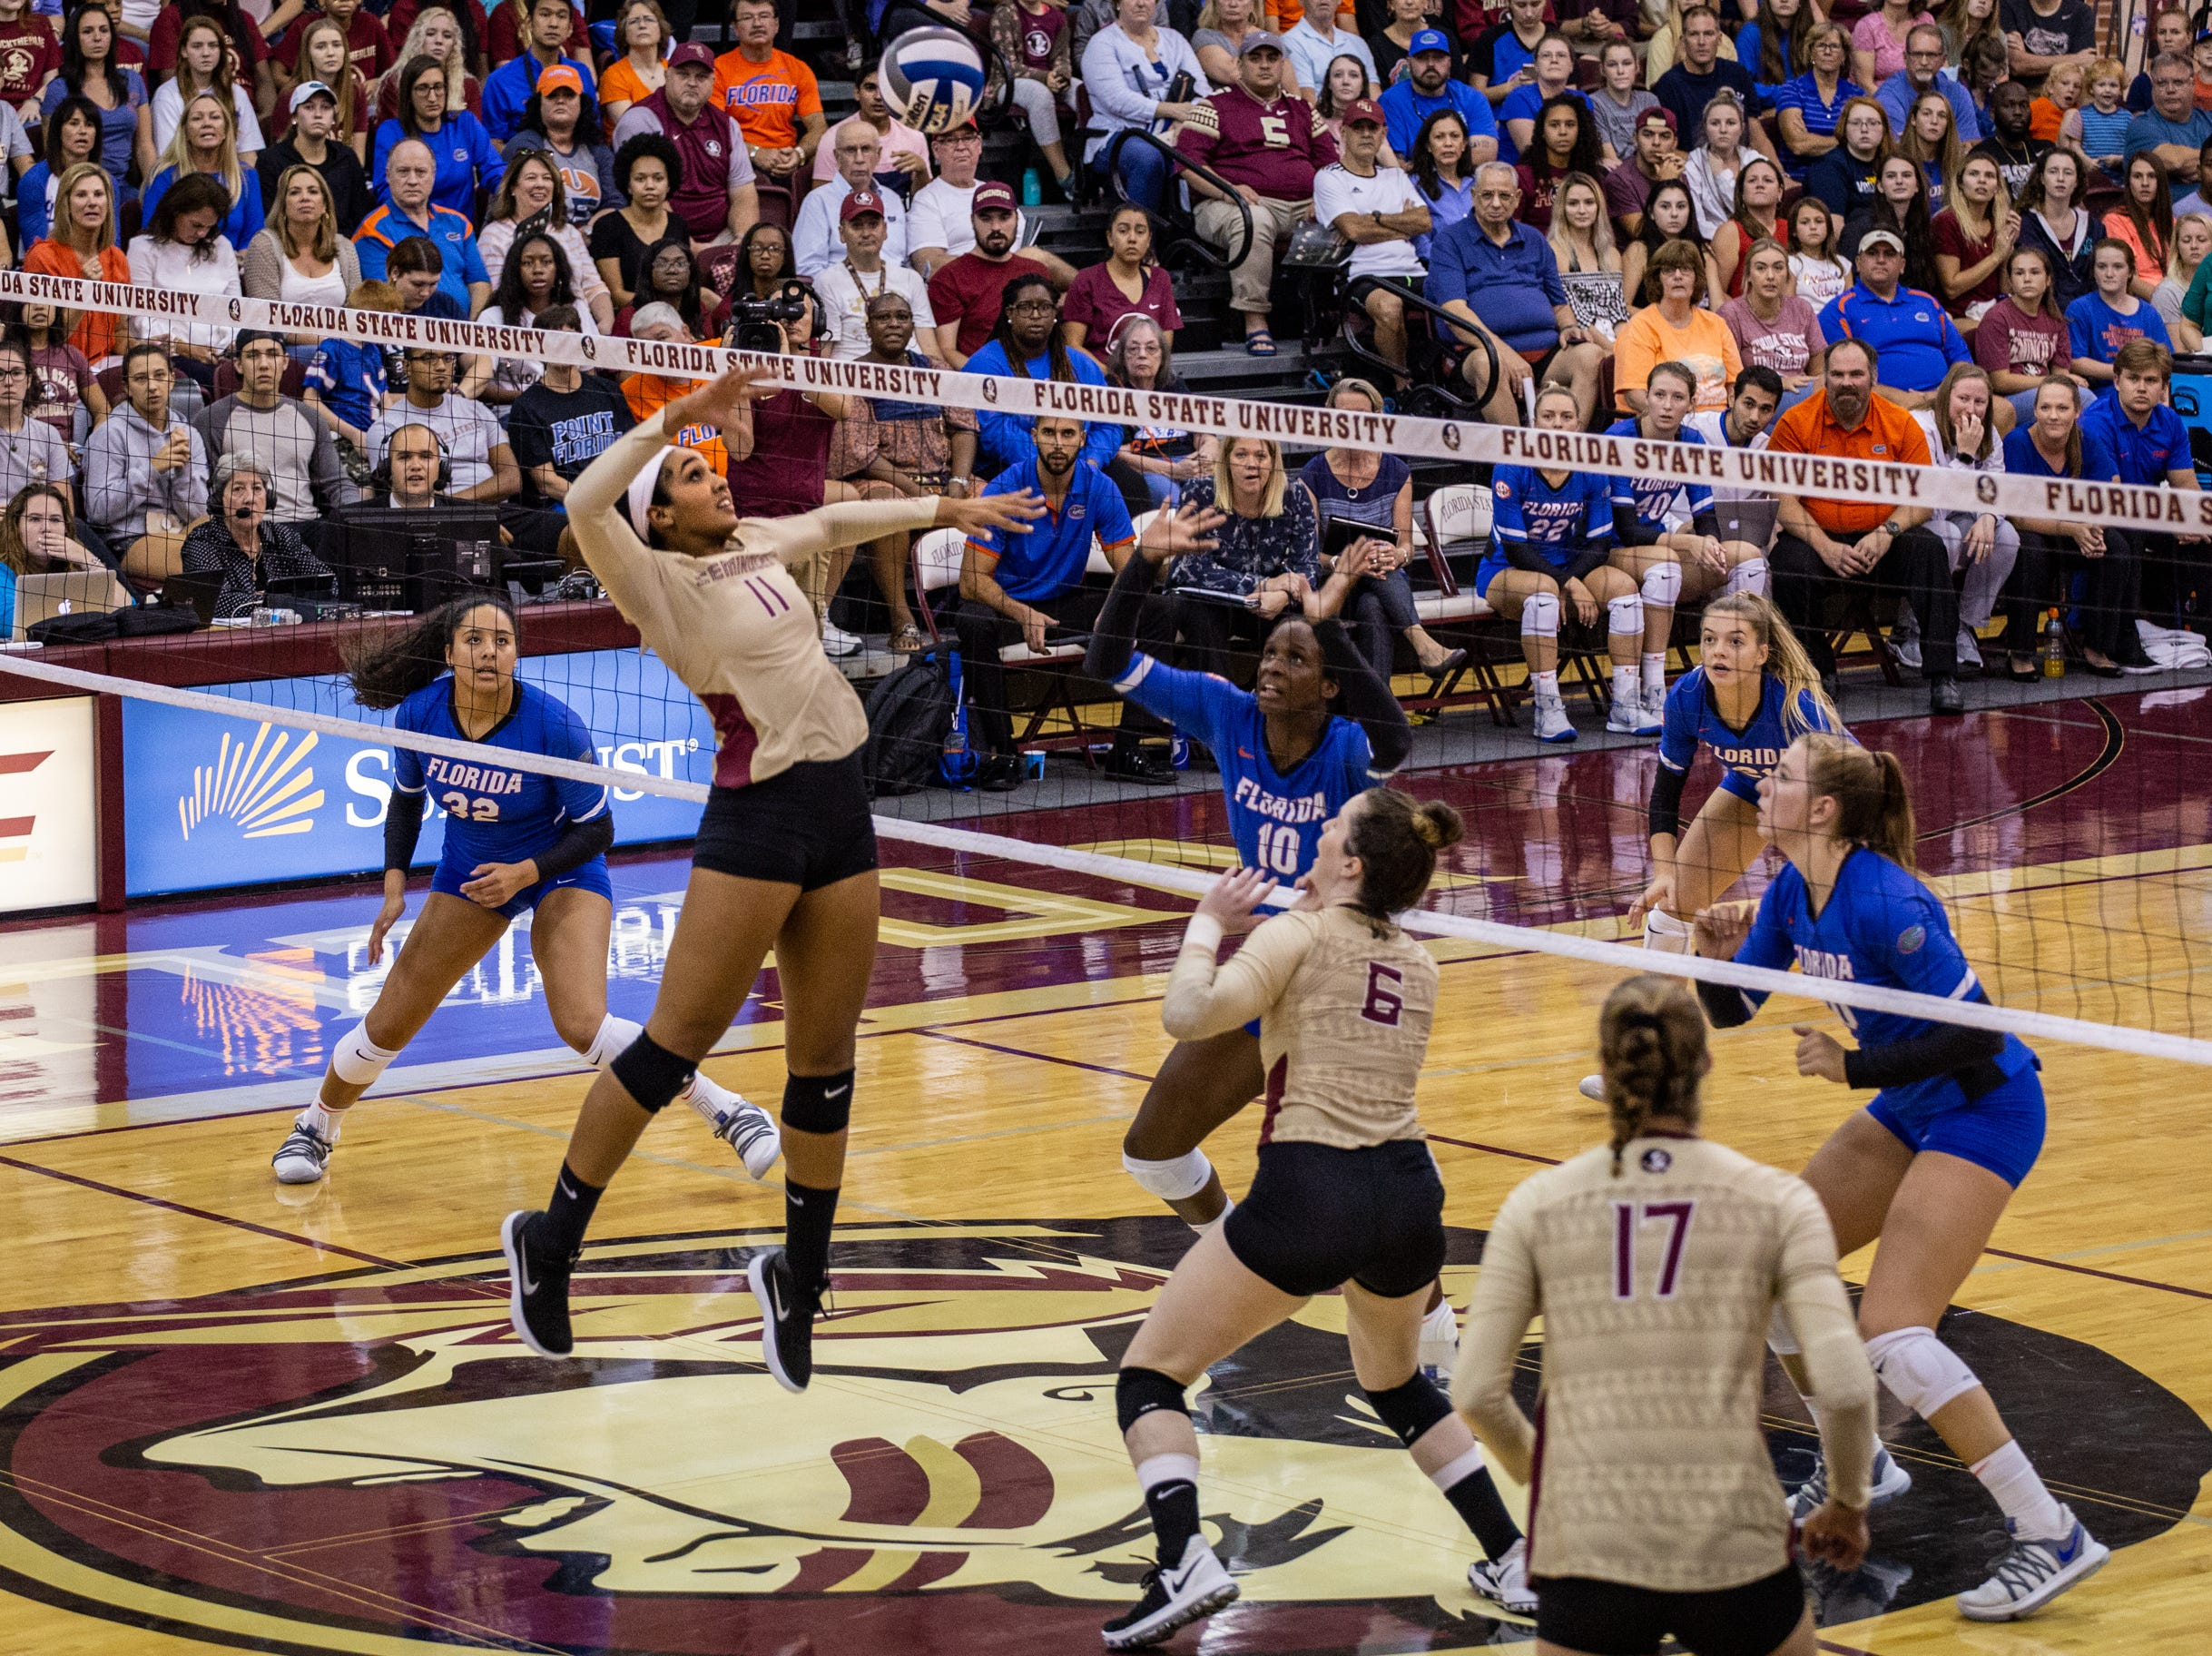 FSU middle blocker Ashley Murray (11) jumps to spike a ball back over the net during the first set against Florida at Tully Gymnasium on Wednesday.